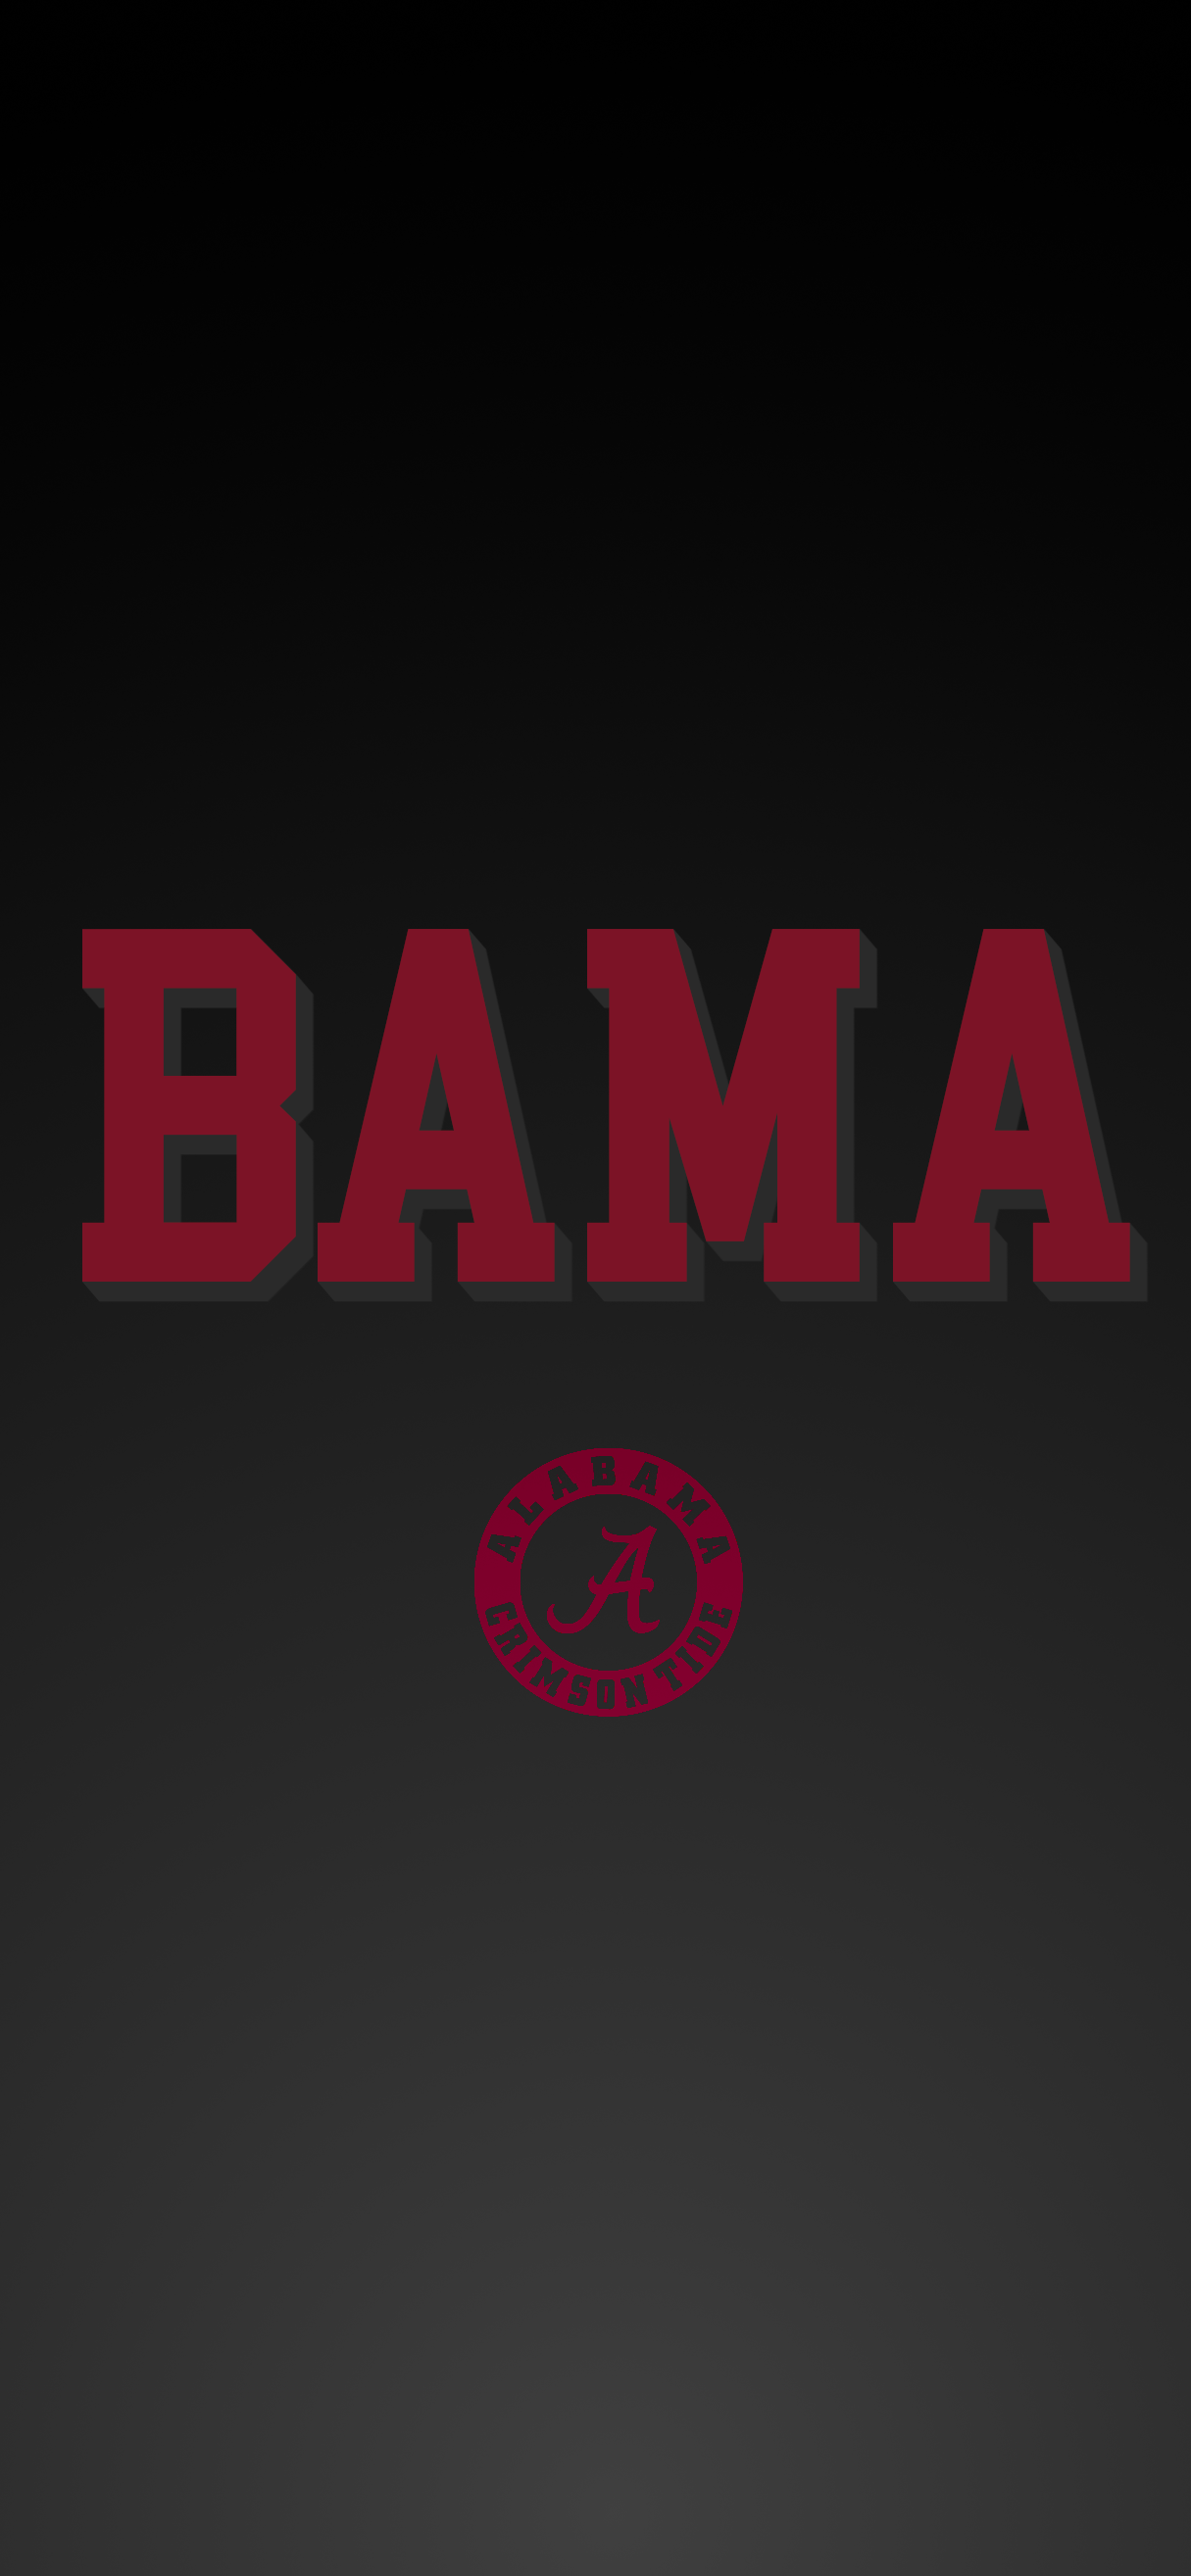 Pin By Nick Pope On High Resolution Alabama Football Wallpapers Hd Iphone Alabama Crimson Tide Logo Alabama Crimson Tide Alabama Football Roll Tide